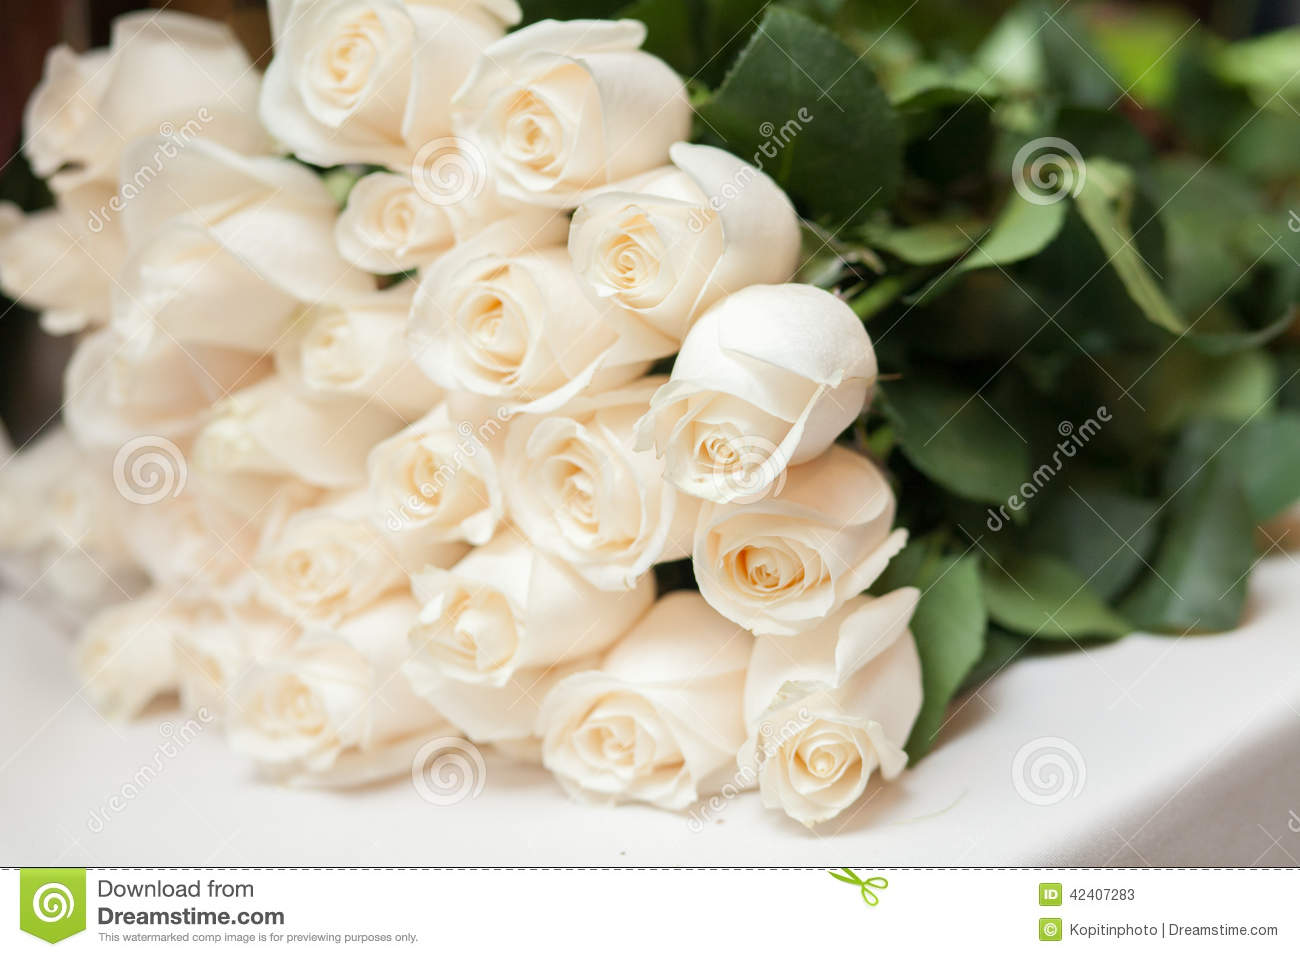 Bouquet of white roses stock image image of detail marriage 42407283 bouquet of white roses izmirmasajfo